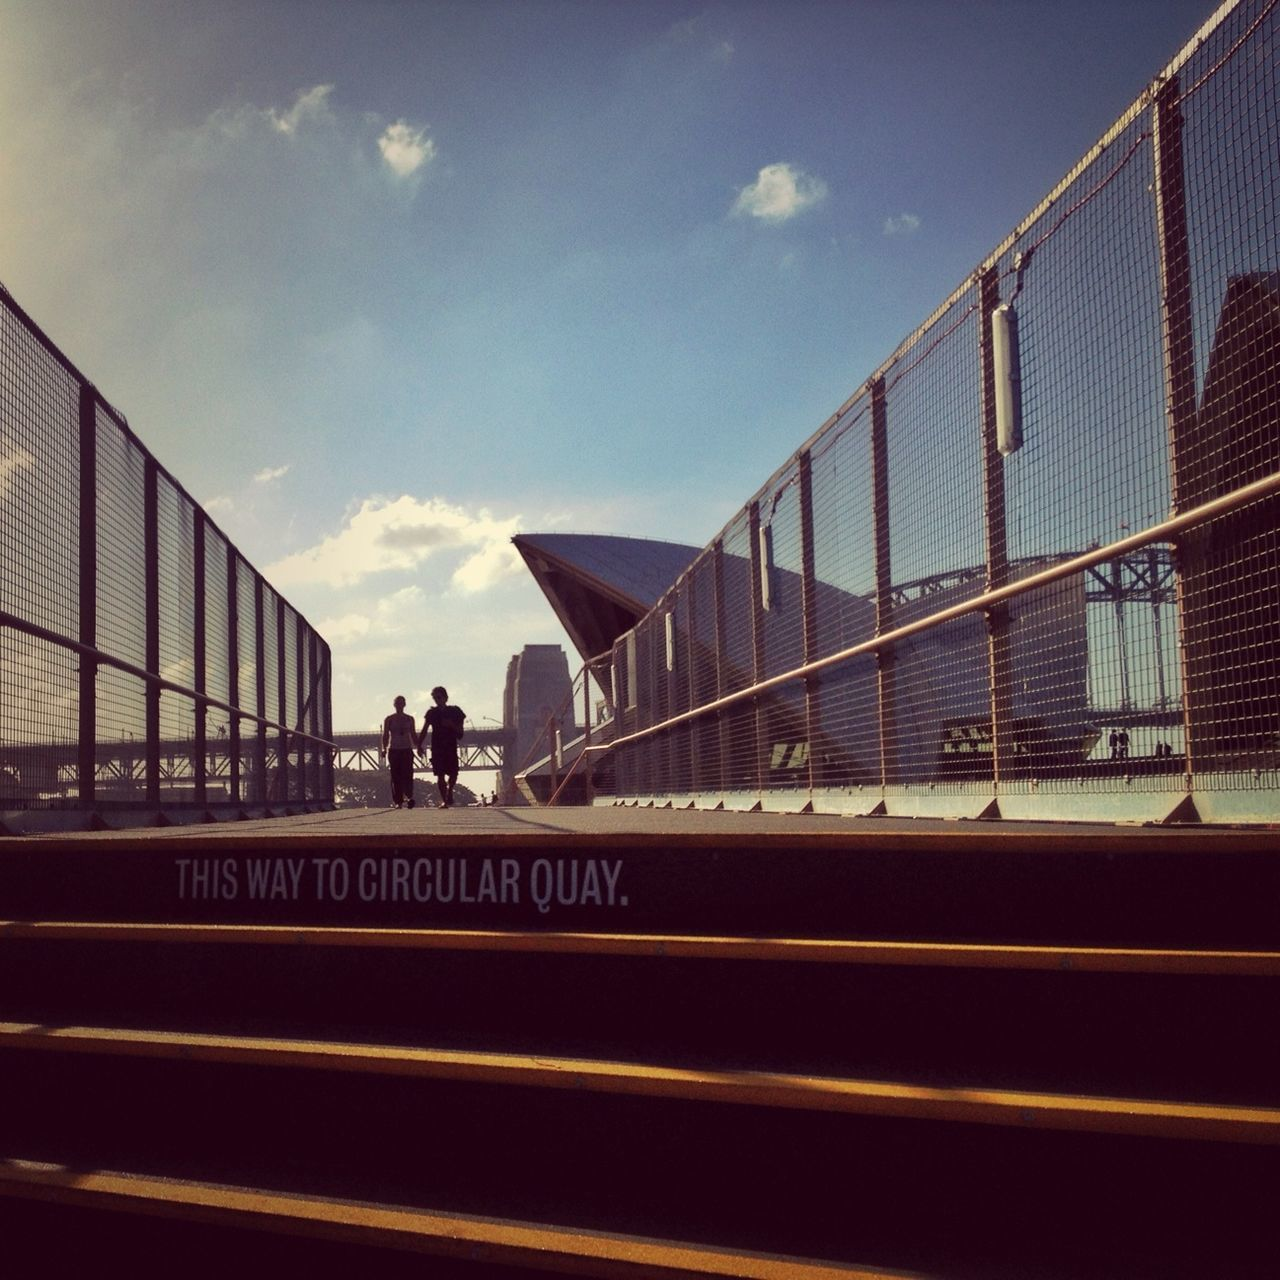 Couple walking on footpath against sydney opera house